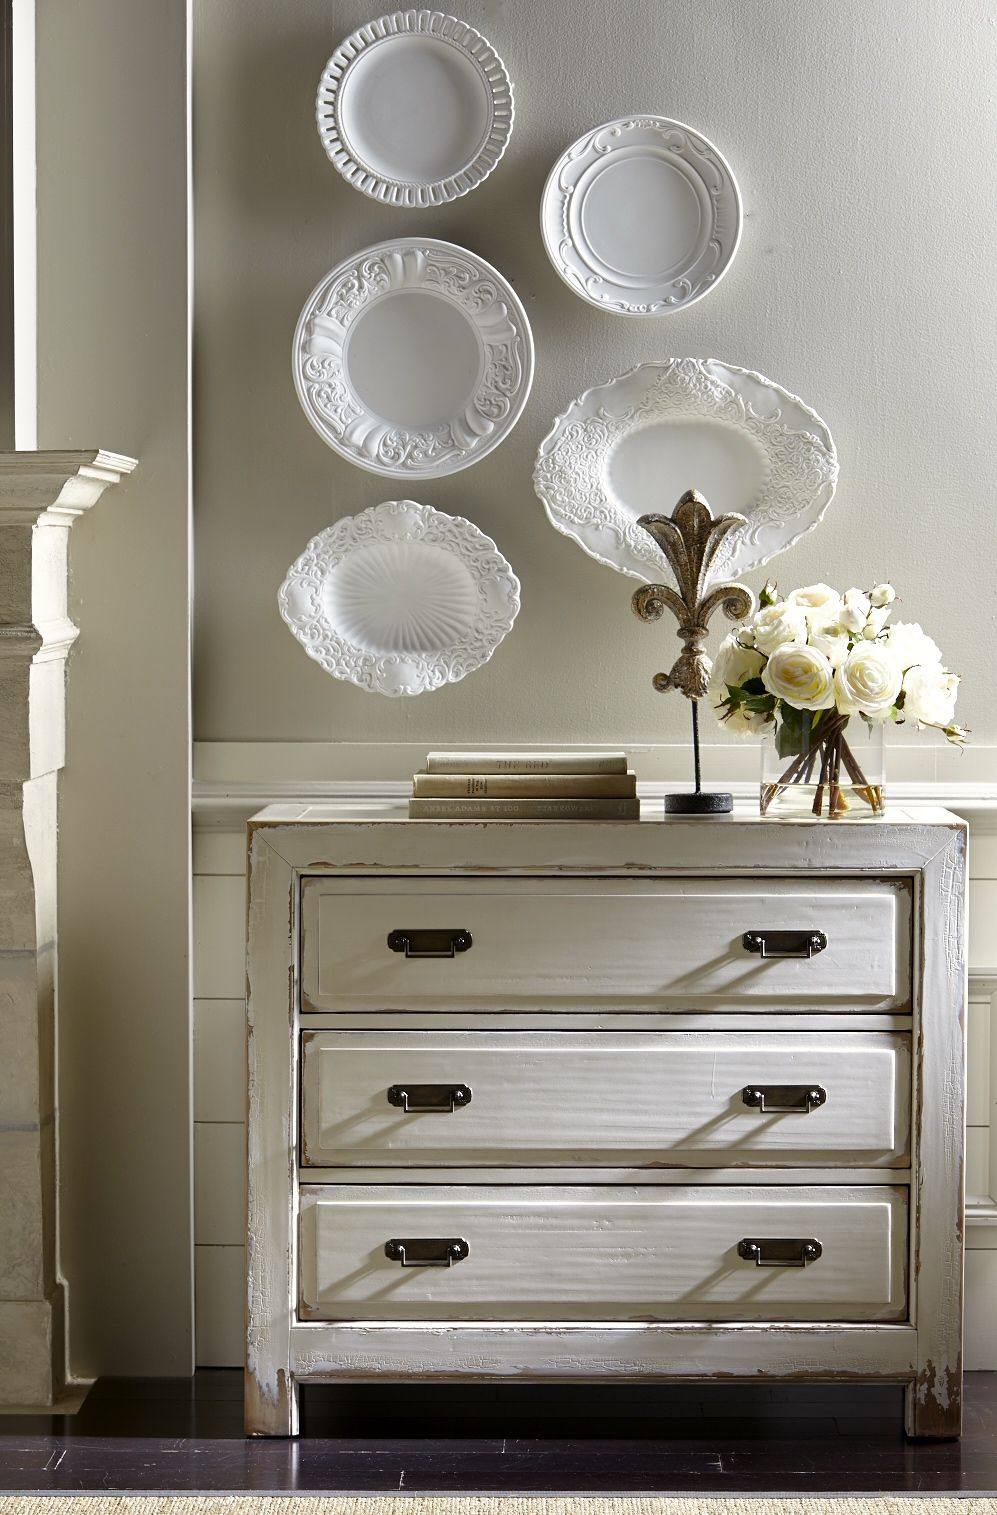 Ming Hall Chest Cabinets Chests Living Room Storage White Decor Decor